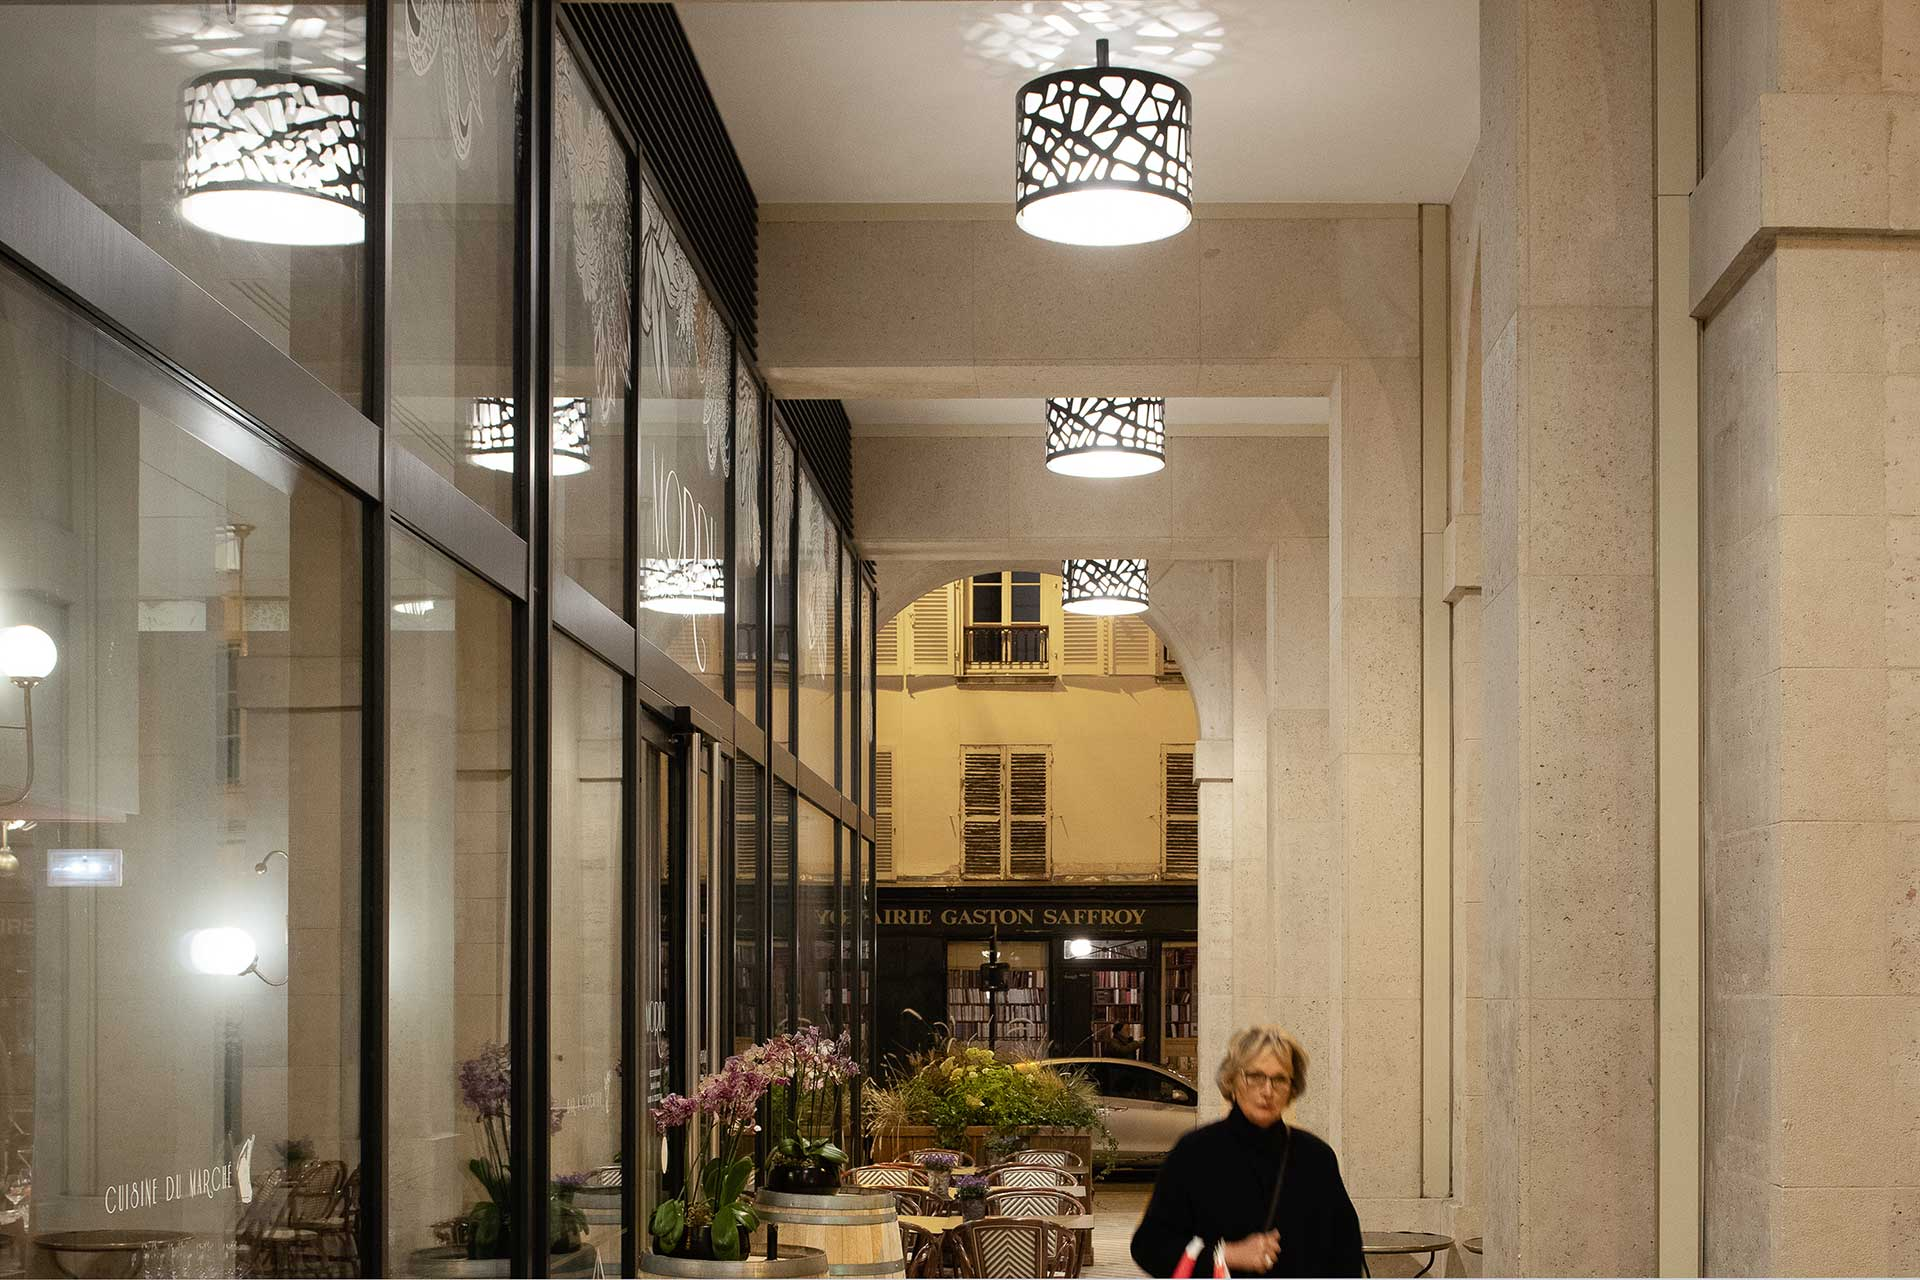 Bespoke luminaires delivering an average of 35 lux for arcades in Marche Saint Germain to create safe and inviting space that attracts customers